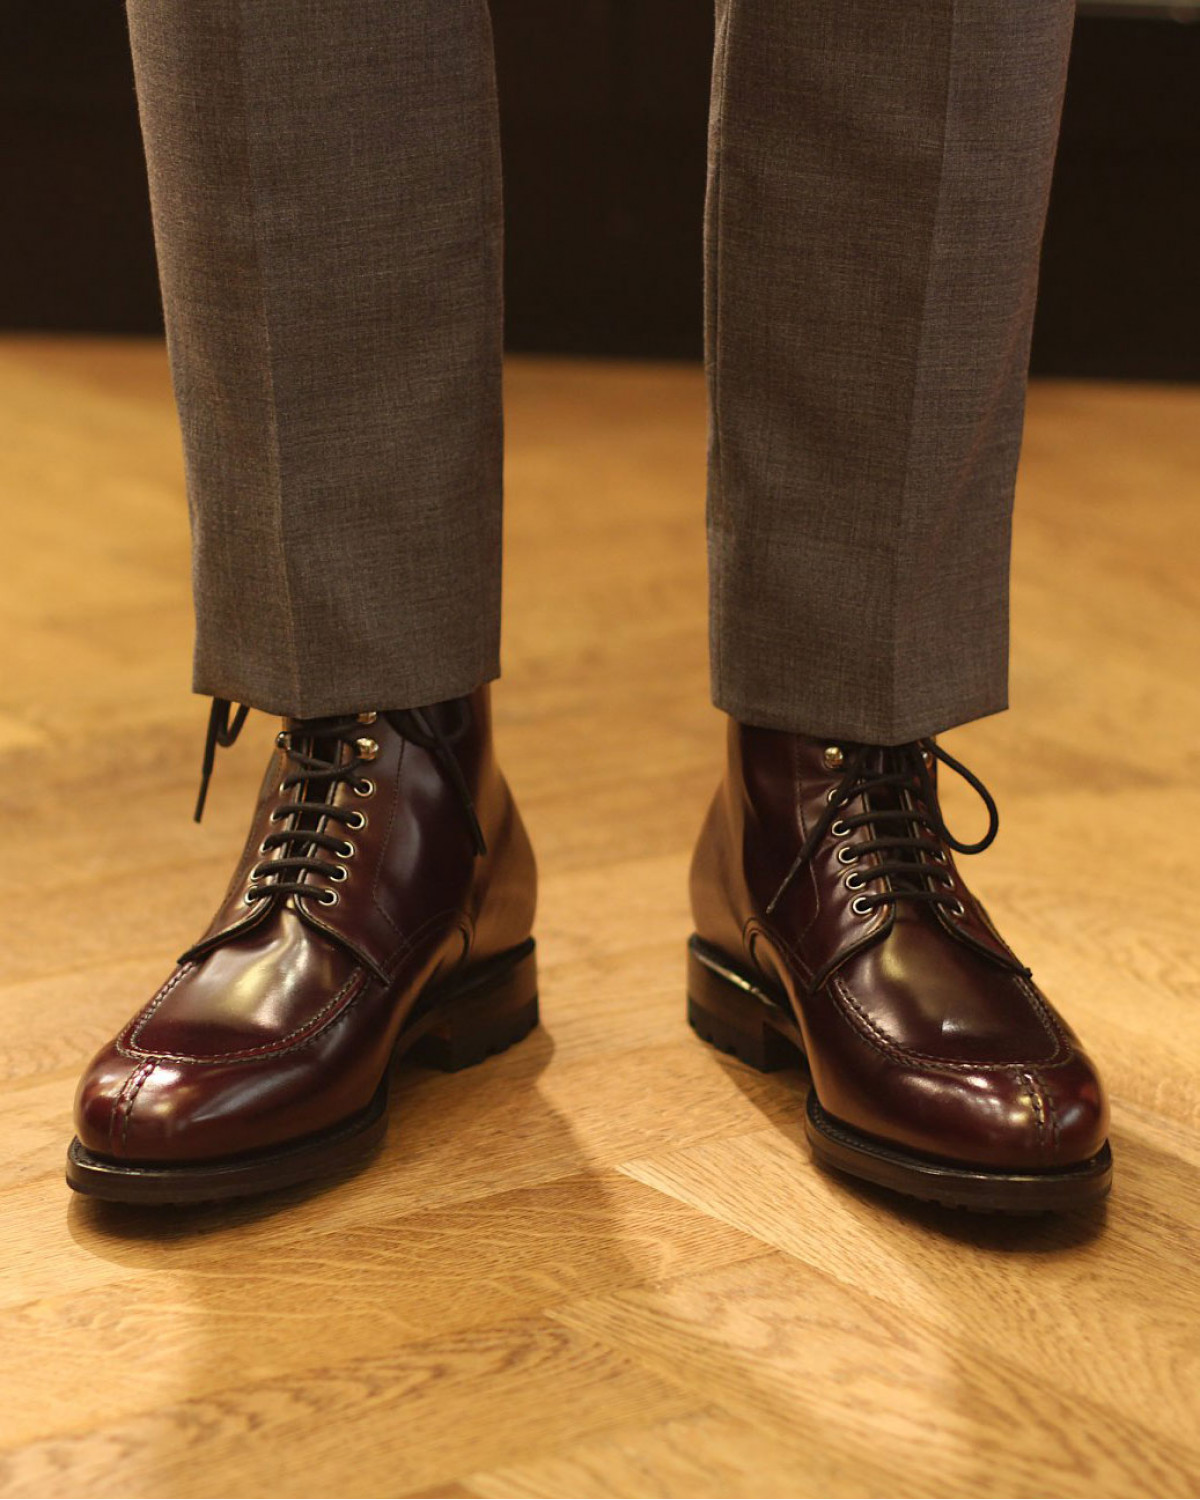 Berwick1707 for HOAX 358 NST Tanker Boots・Cordovan Color